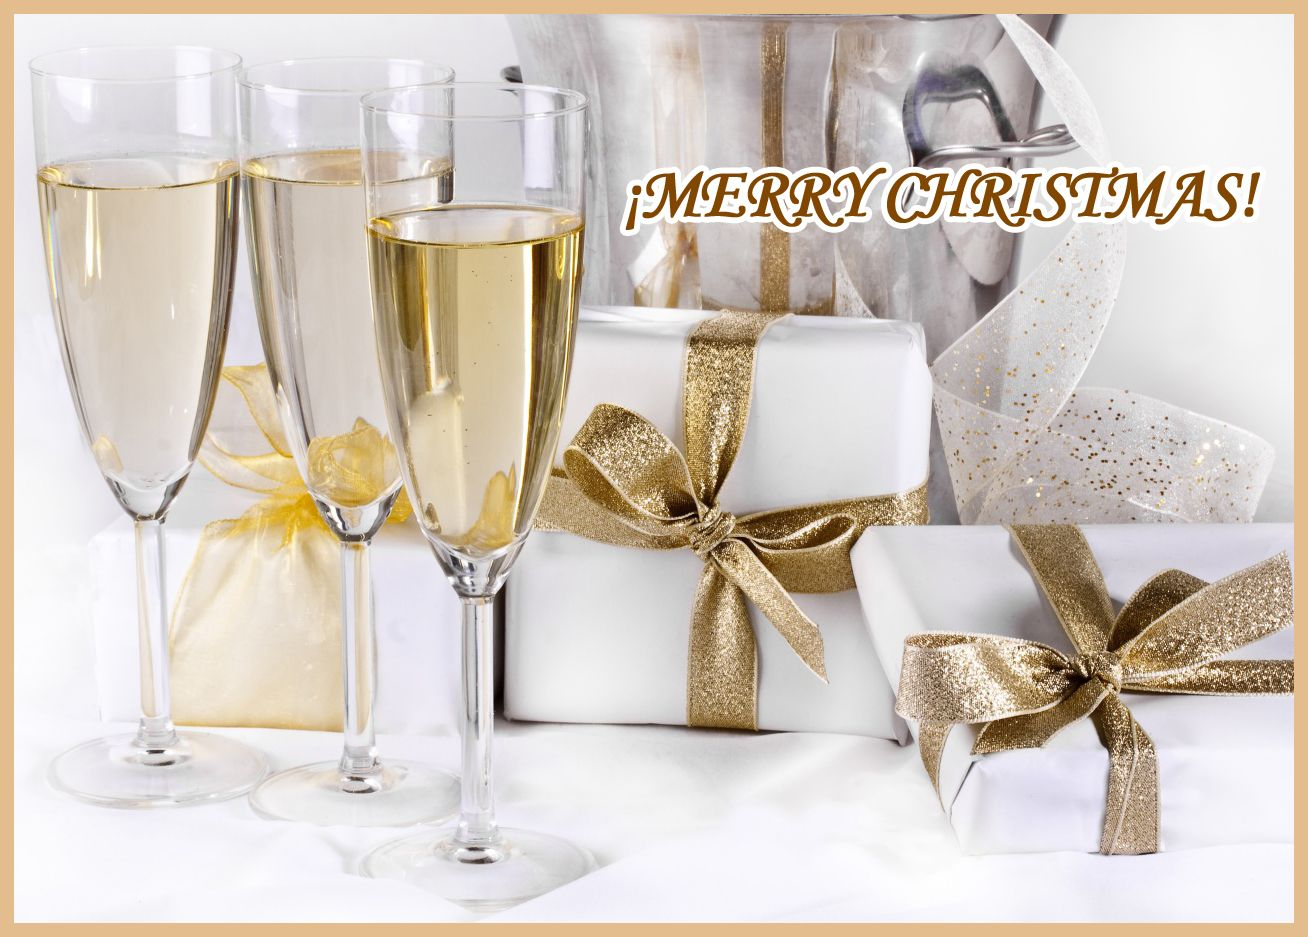 Vinoole - Merry Christmas | Vinoole December 13 | Pinterest